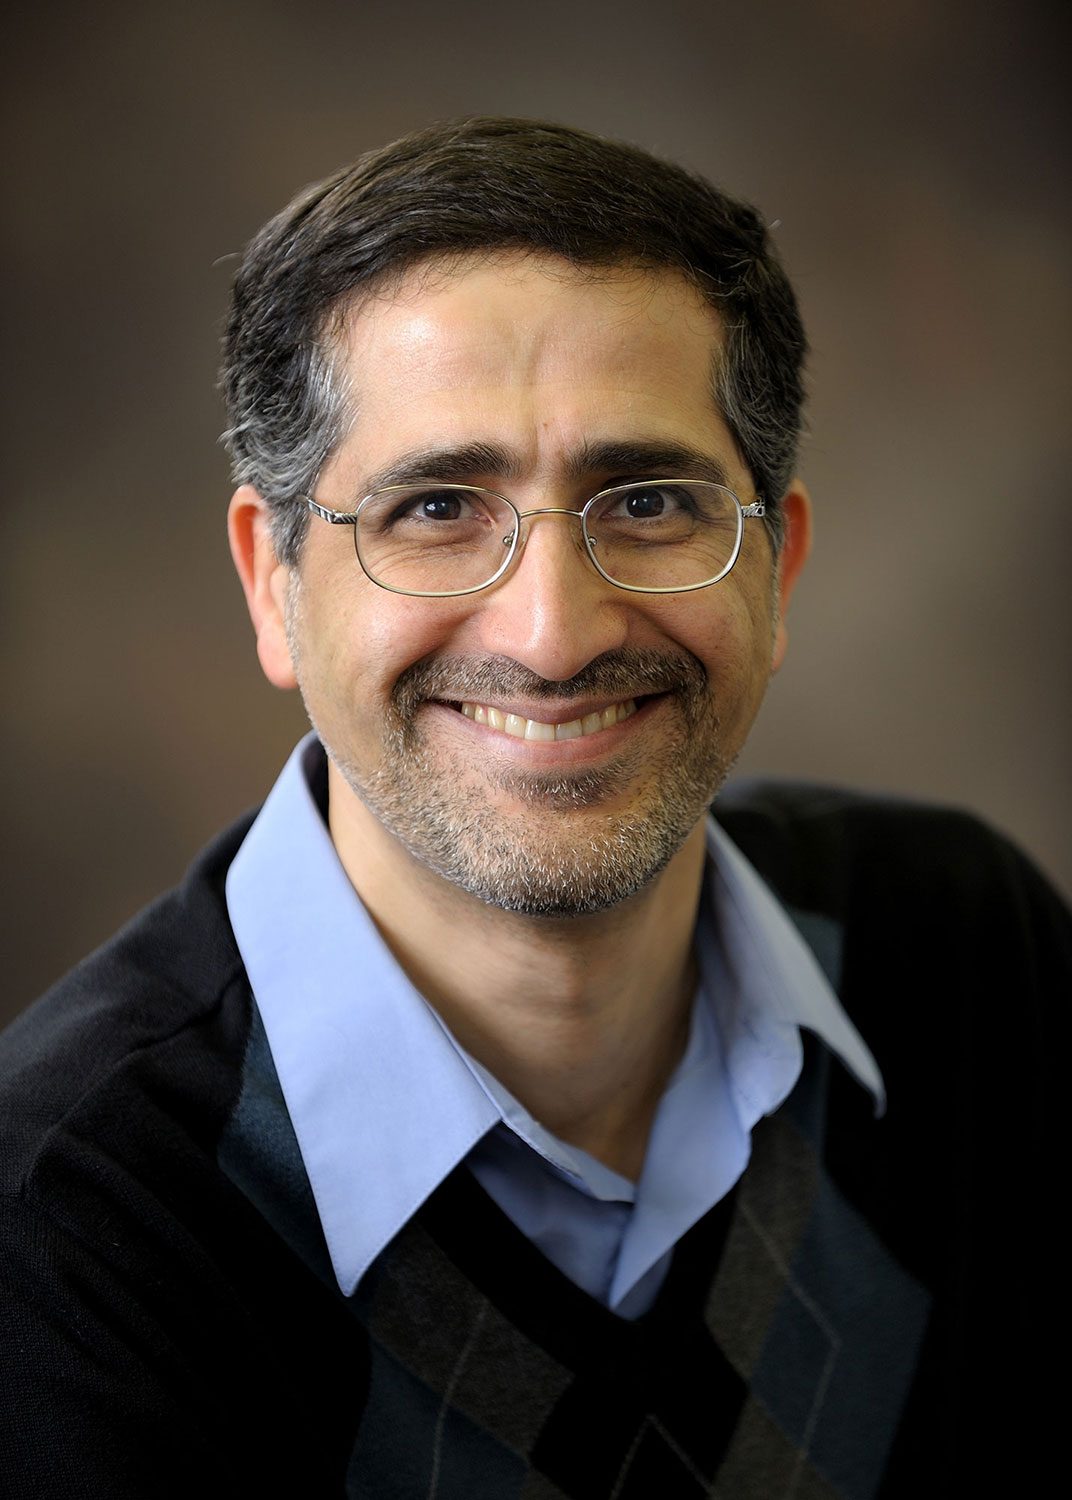 Photo of Mohsen Dadfarnia, Ph.D.